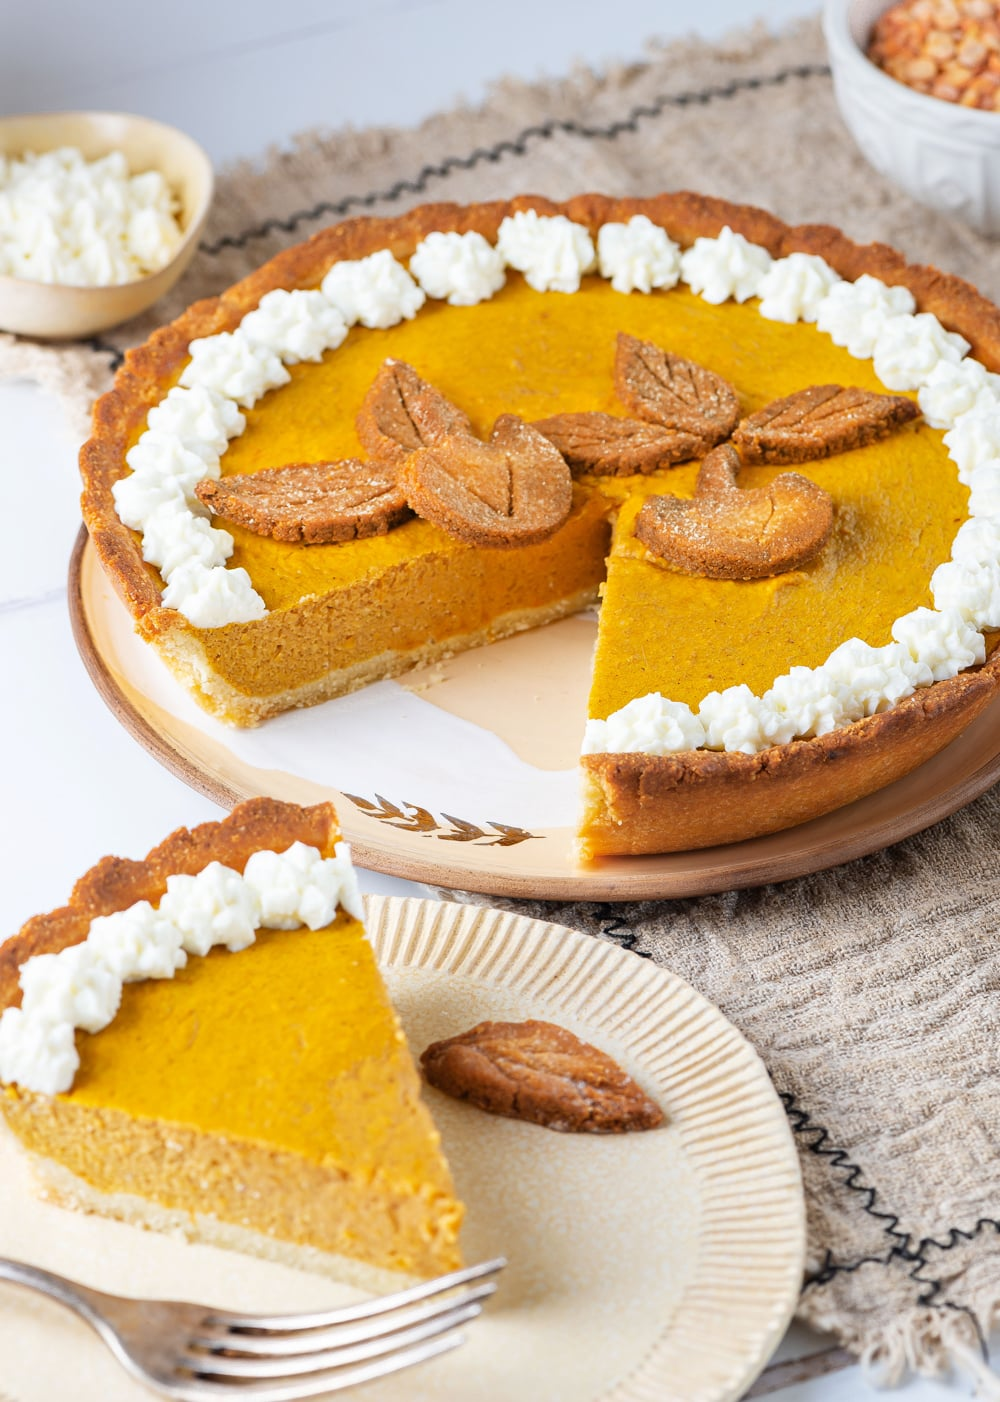 A slice of pumpkin pie set next to the rest of the pie.